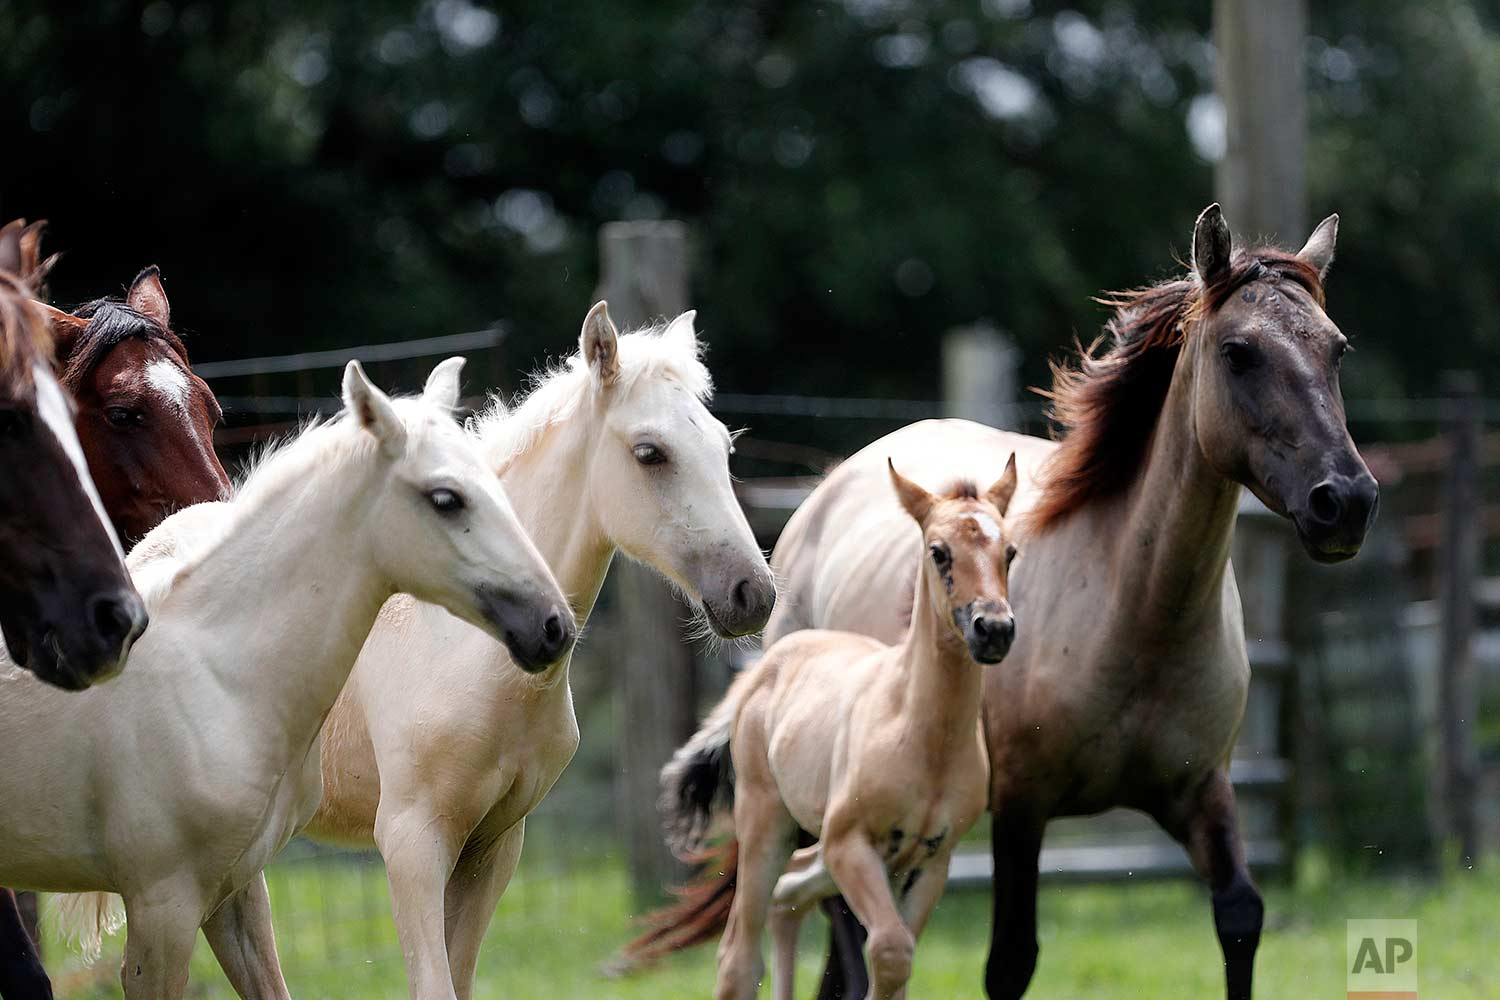 In this July 17, 2018, photo, Choctaw mare, right, and her 3-month-old filly, center, run with other Choctaw horses on Bill Frank Brown's farm in Poplarville, Miss. (AP Photo/Gerald Herbert)